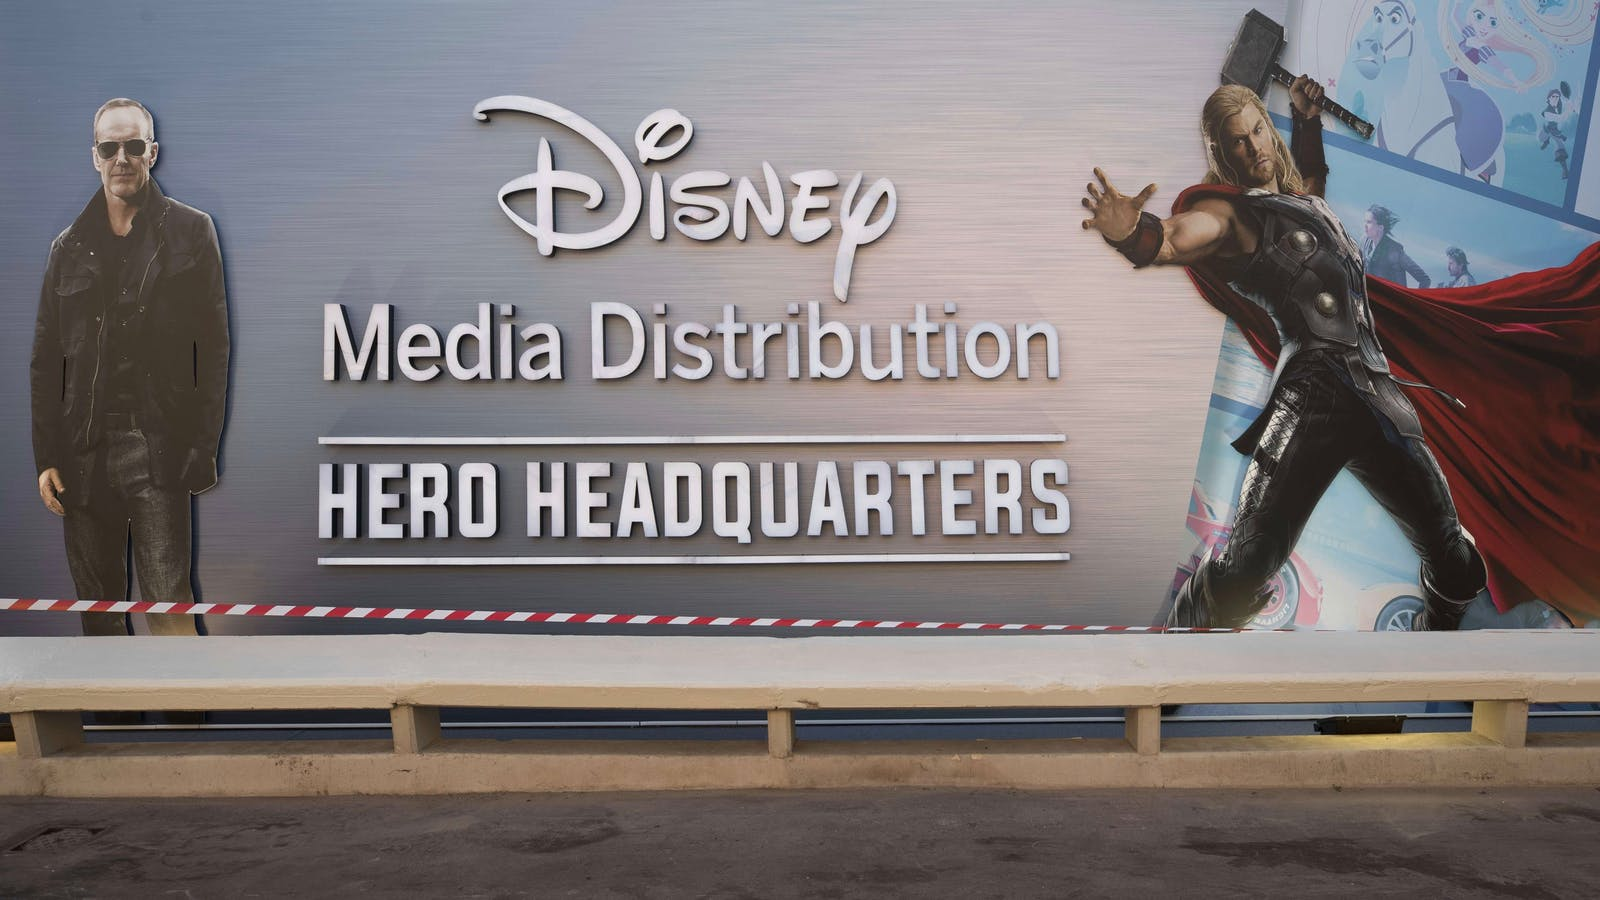 Disney's office at the international TV sales market MIPCOM in Cannes, France in 2017. Photo by AP